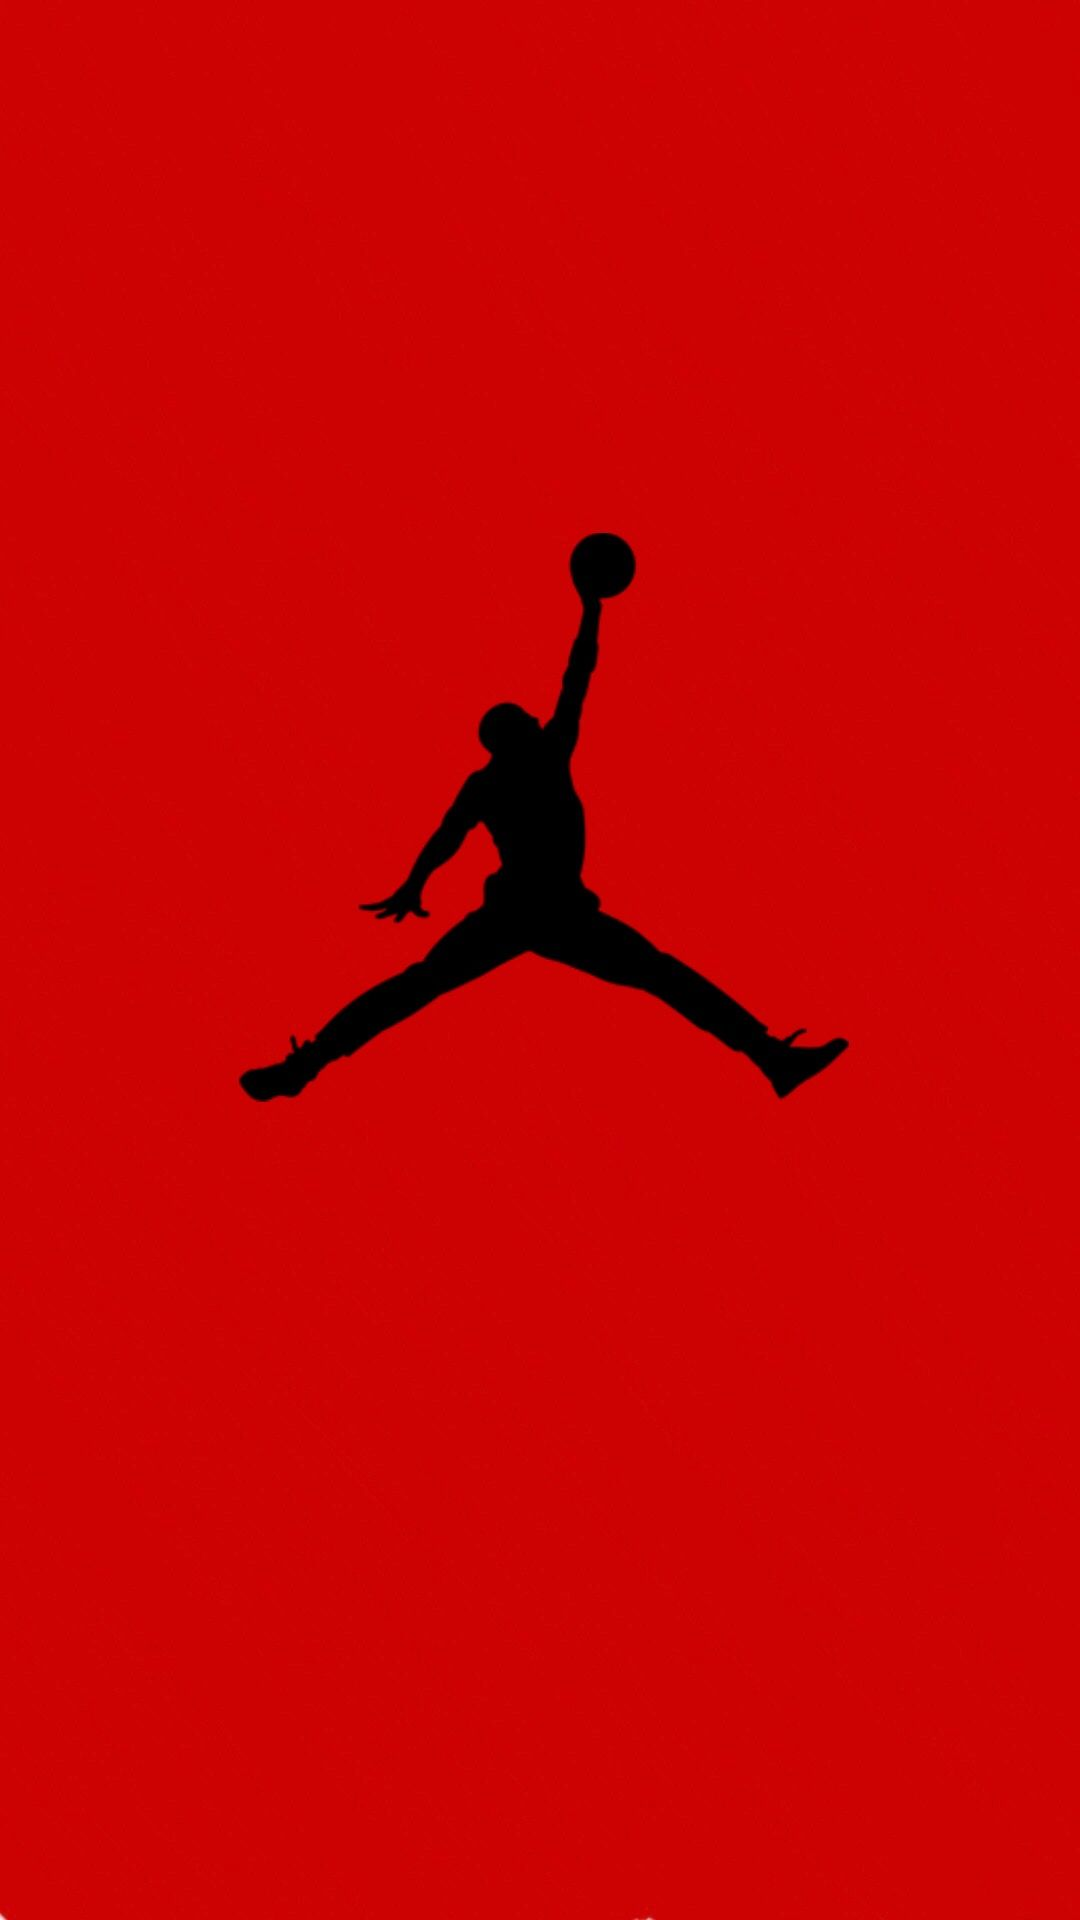 air jordan logo iphone background backgrounds for iphone